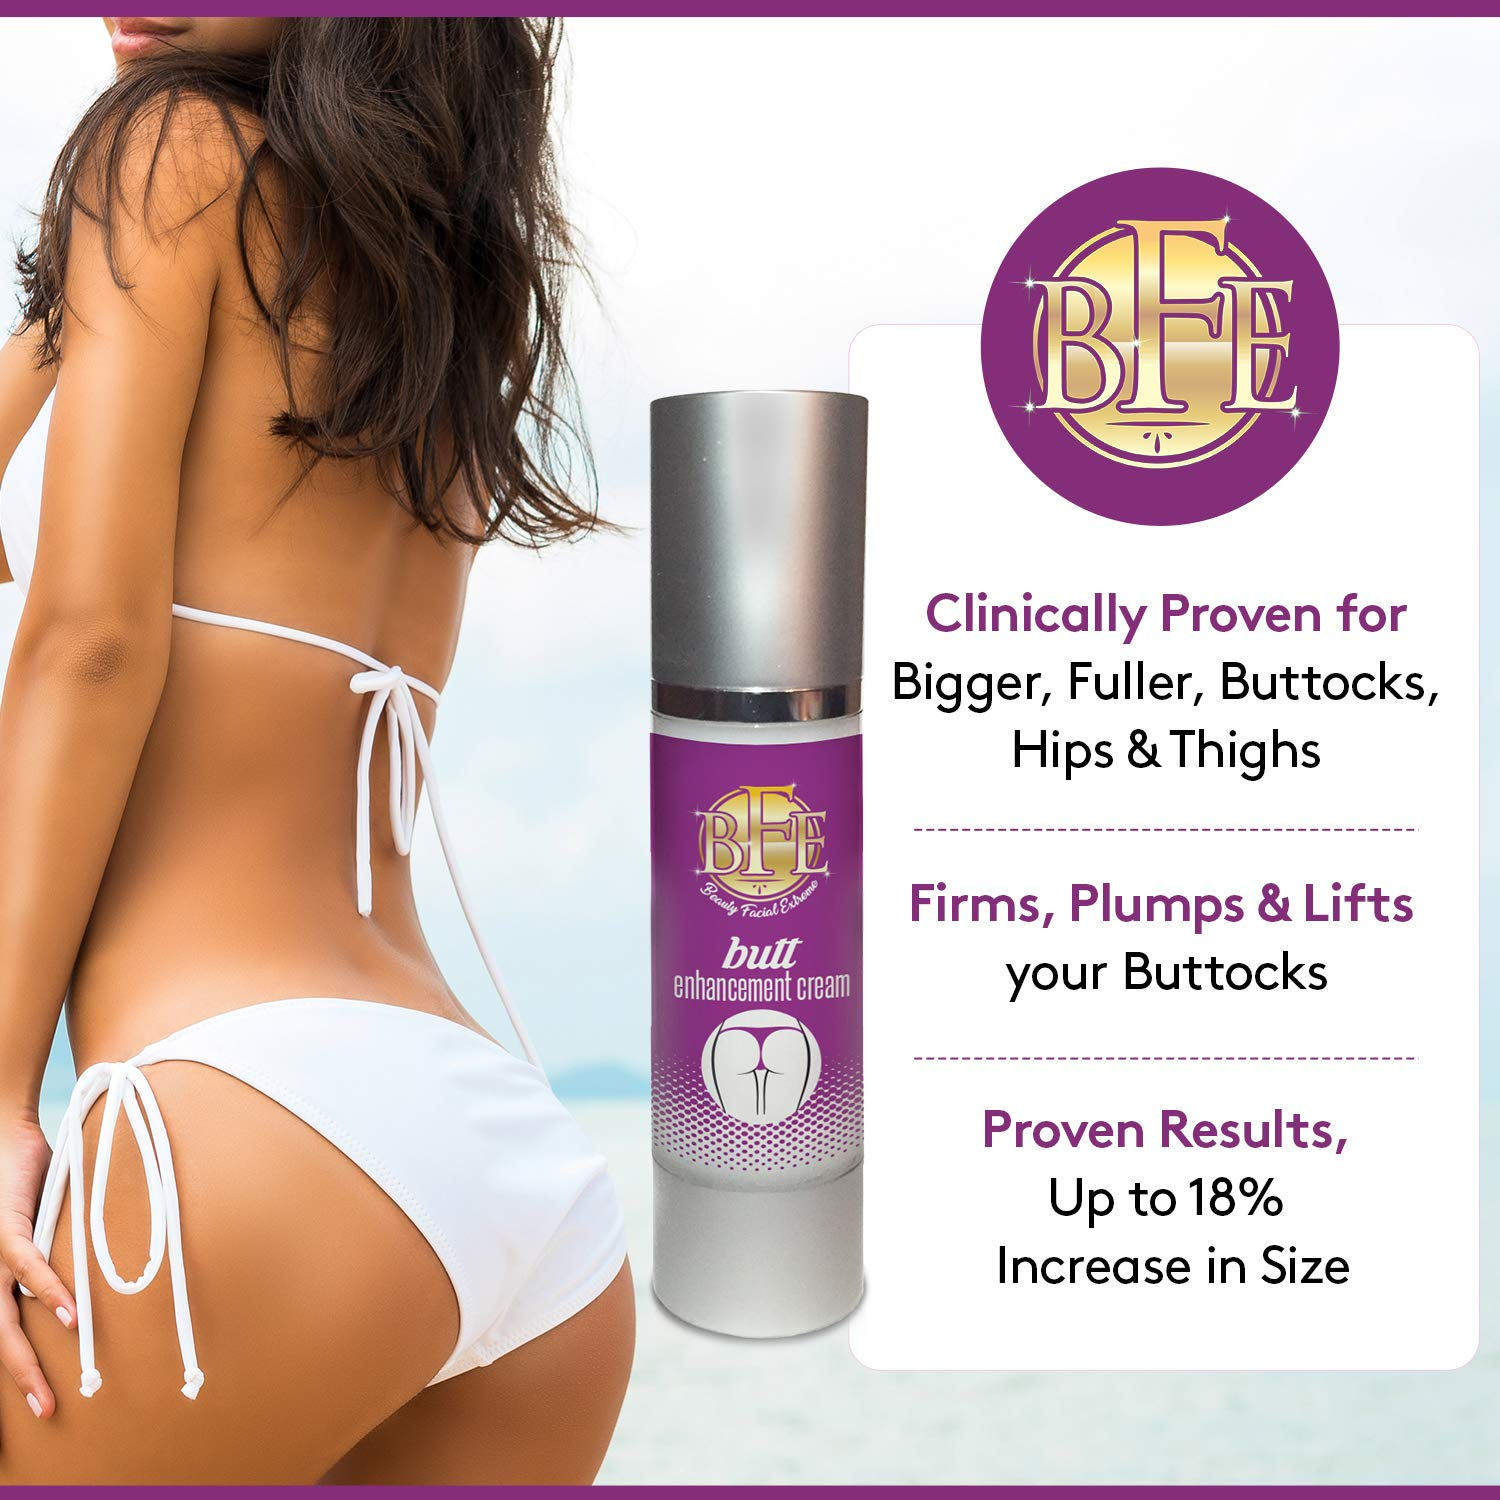 Butt Enhancement Enlargement Cream- Clinically Proven for Bigger, Fuller, Buttocks, Hips Thighs. Firms, Plumps Lifts your Booty. Natural Enhancer for Men Women.